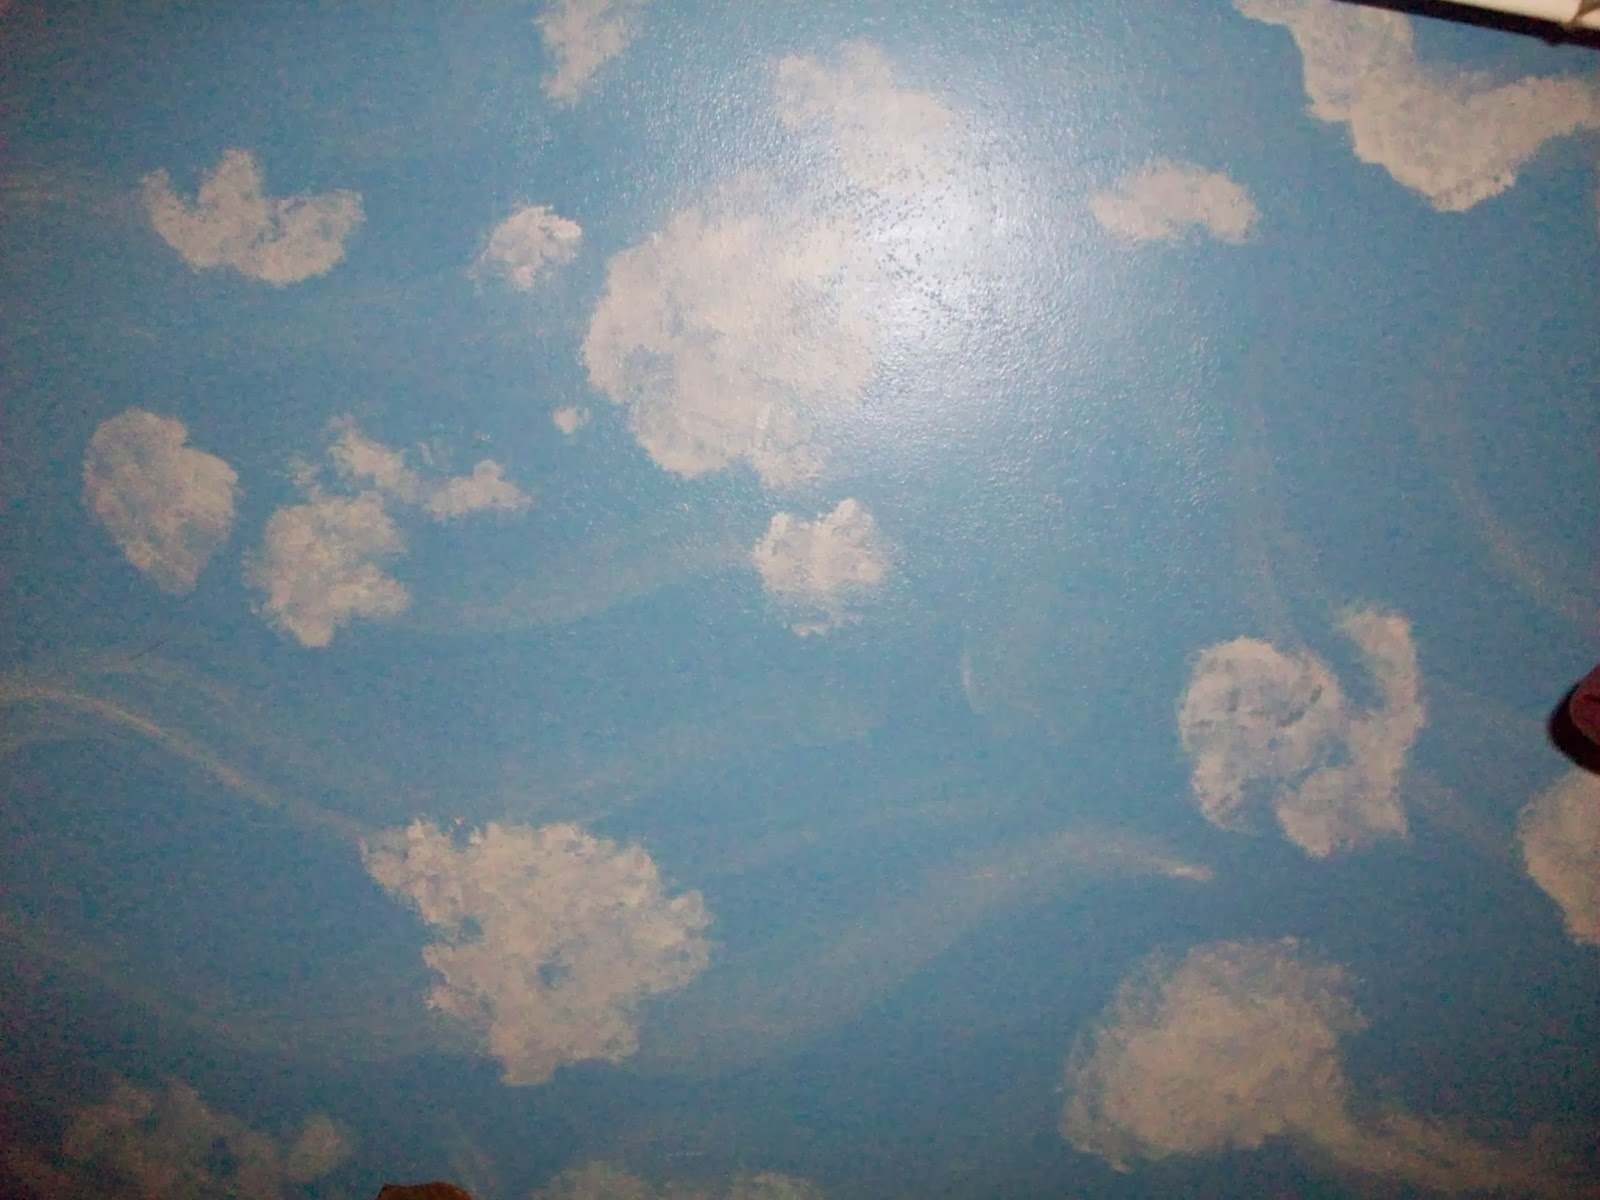 I Painted Our Bedroom Sky Blue With Clouds In 2005 The Theme Is Jimmy Buffett Hanging Lanterns Parrots Beach Scenes Etc My House So